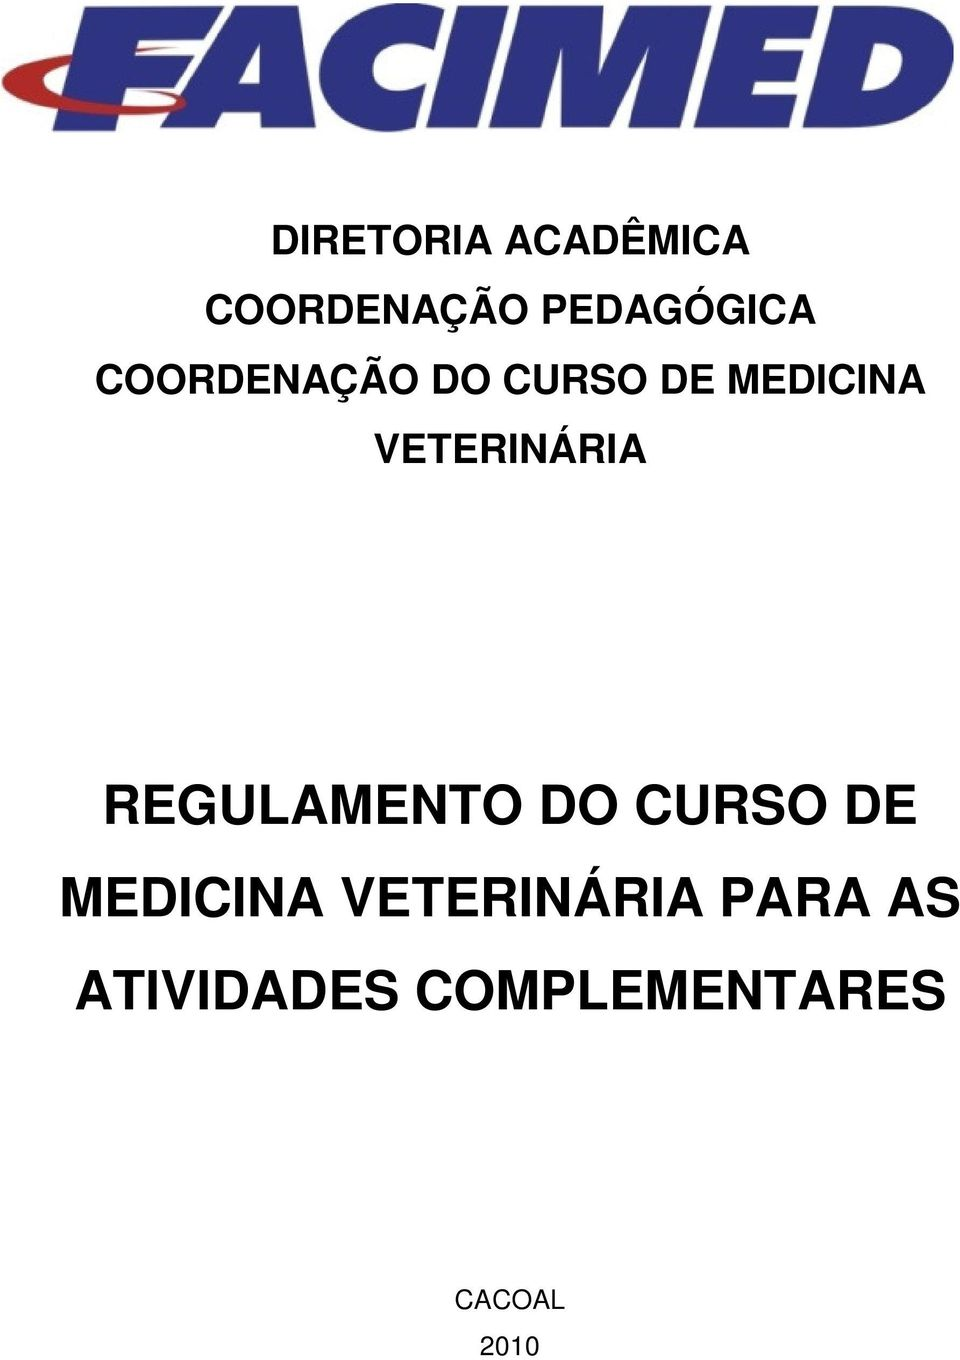 REGULAMENTO DO CURSO DE MEDICINA VETERINÁRIA